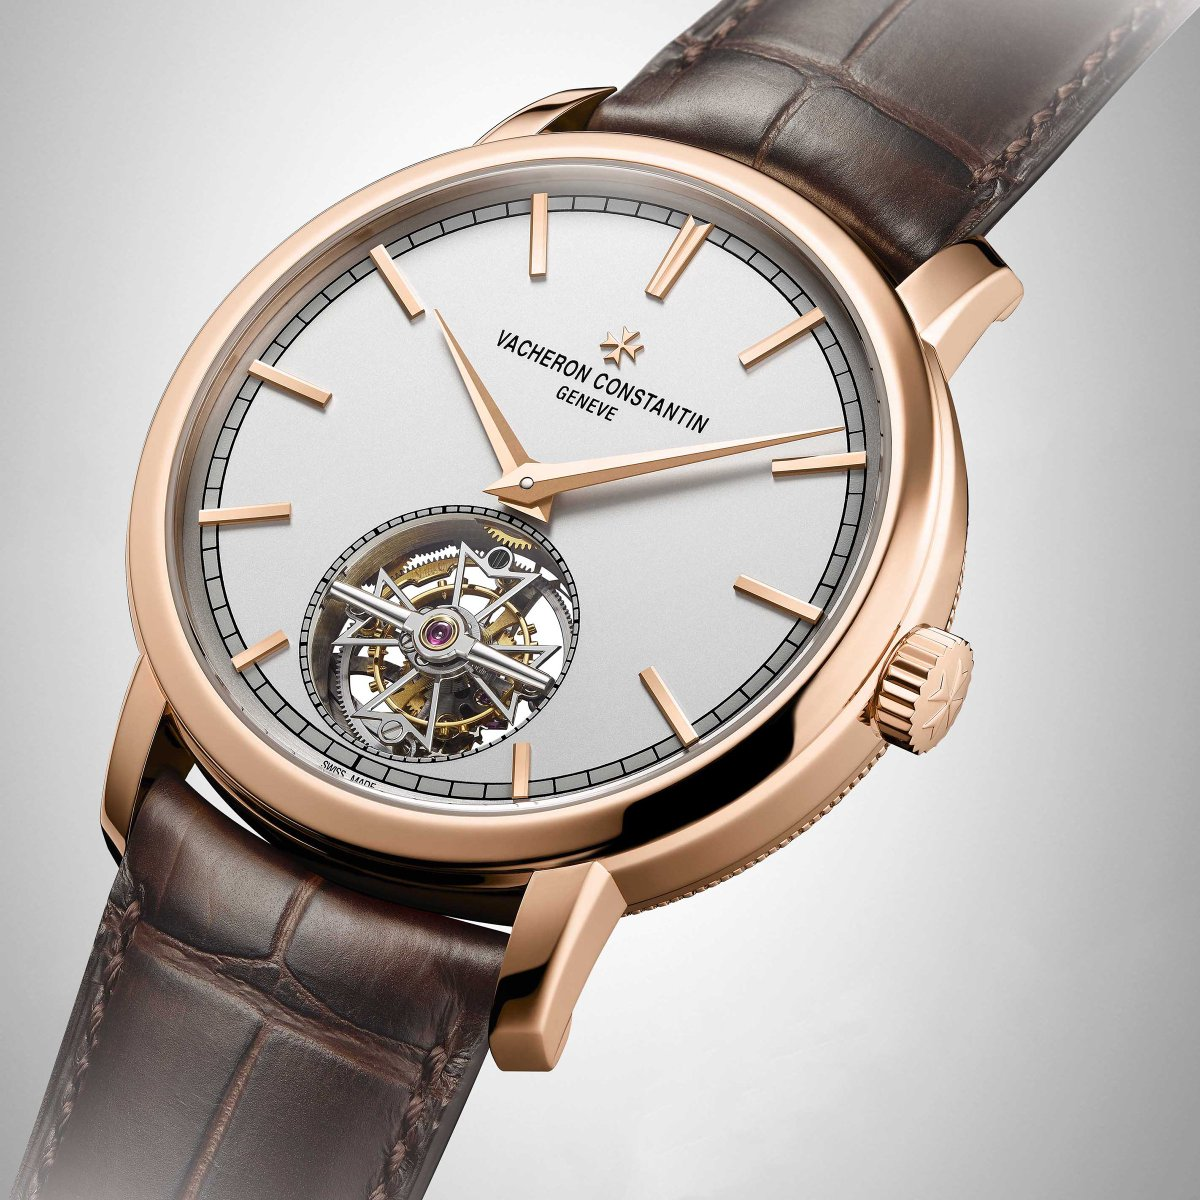 The Traditionnelle tourbillon watch is a new milestone in the history of the Maison, since its 41 mm-diameter case in 18K 5N pink gold houses the first self-winding movement developed by Vacheron Constantin. Discover more: ow.ly/j1M730kdoAZ